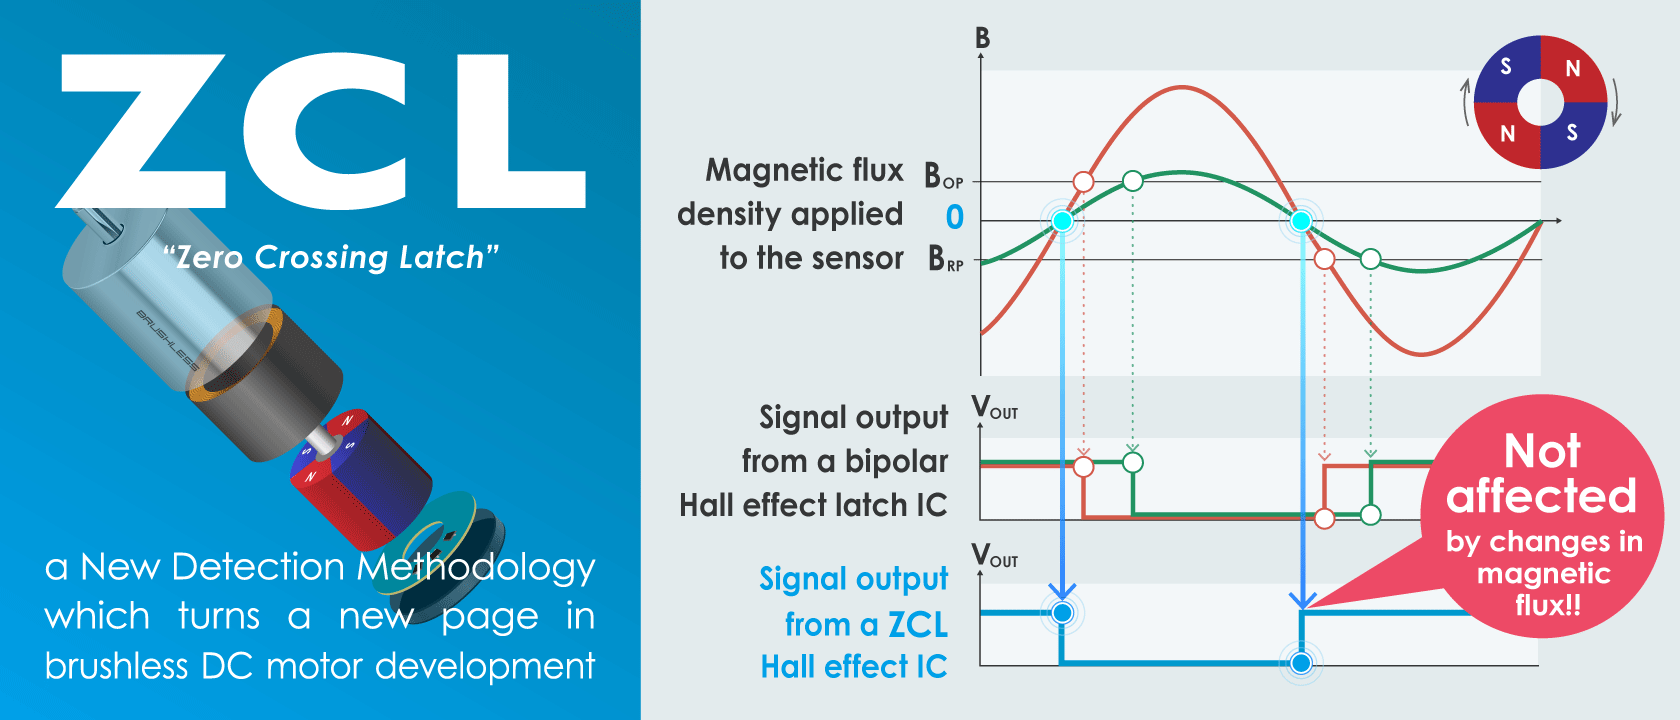 ZCL - a New Detection Methodology which turns a new page in brushless DC motor development